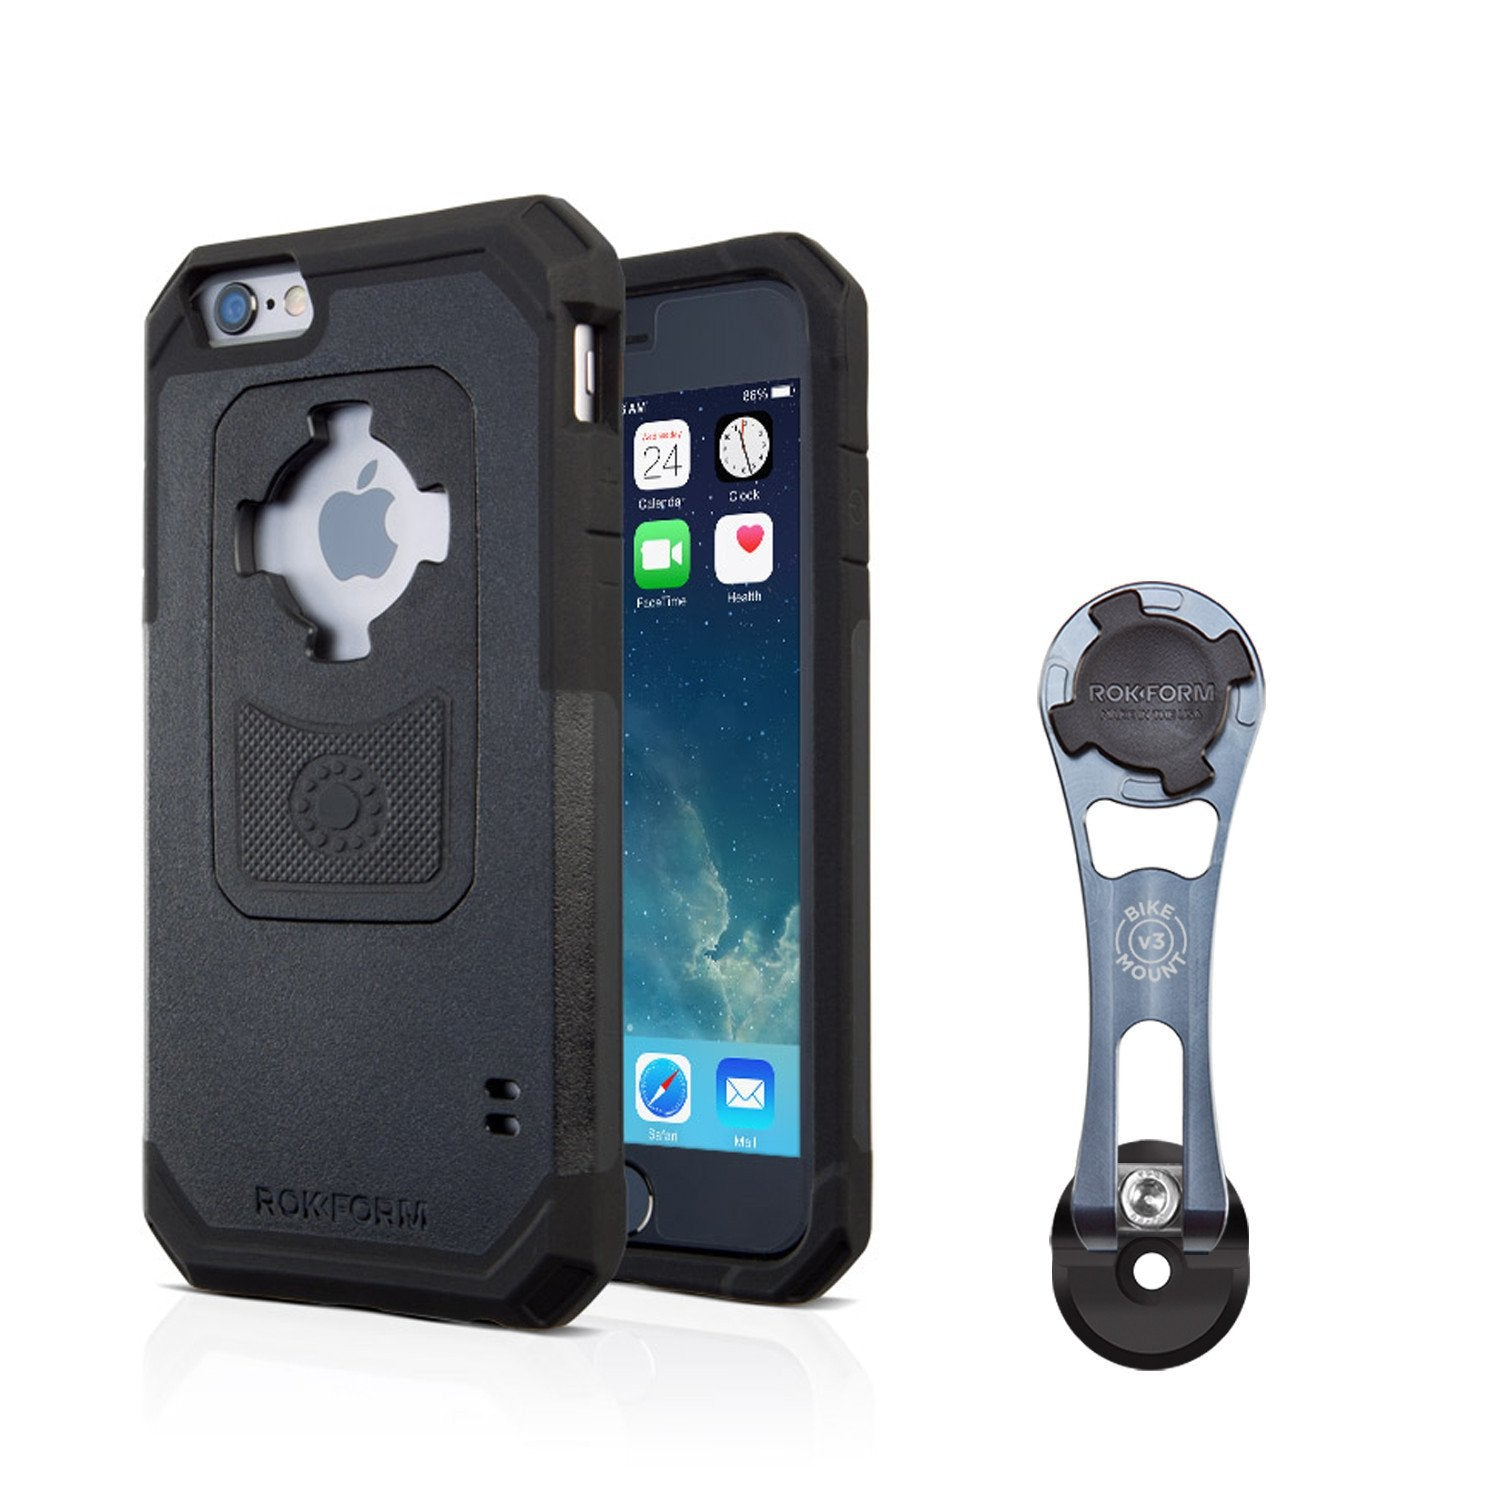 Iphone Bike Mount >> Bike Mount For Iphone 6 6 Plus 5 5s 4 4s And Samsung Galaxy S6